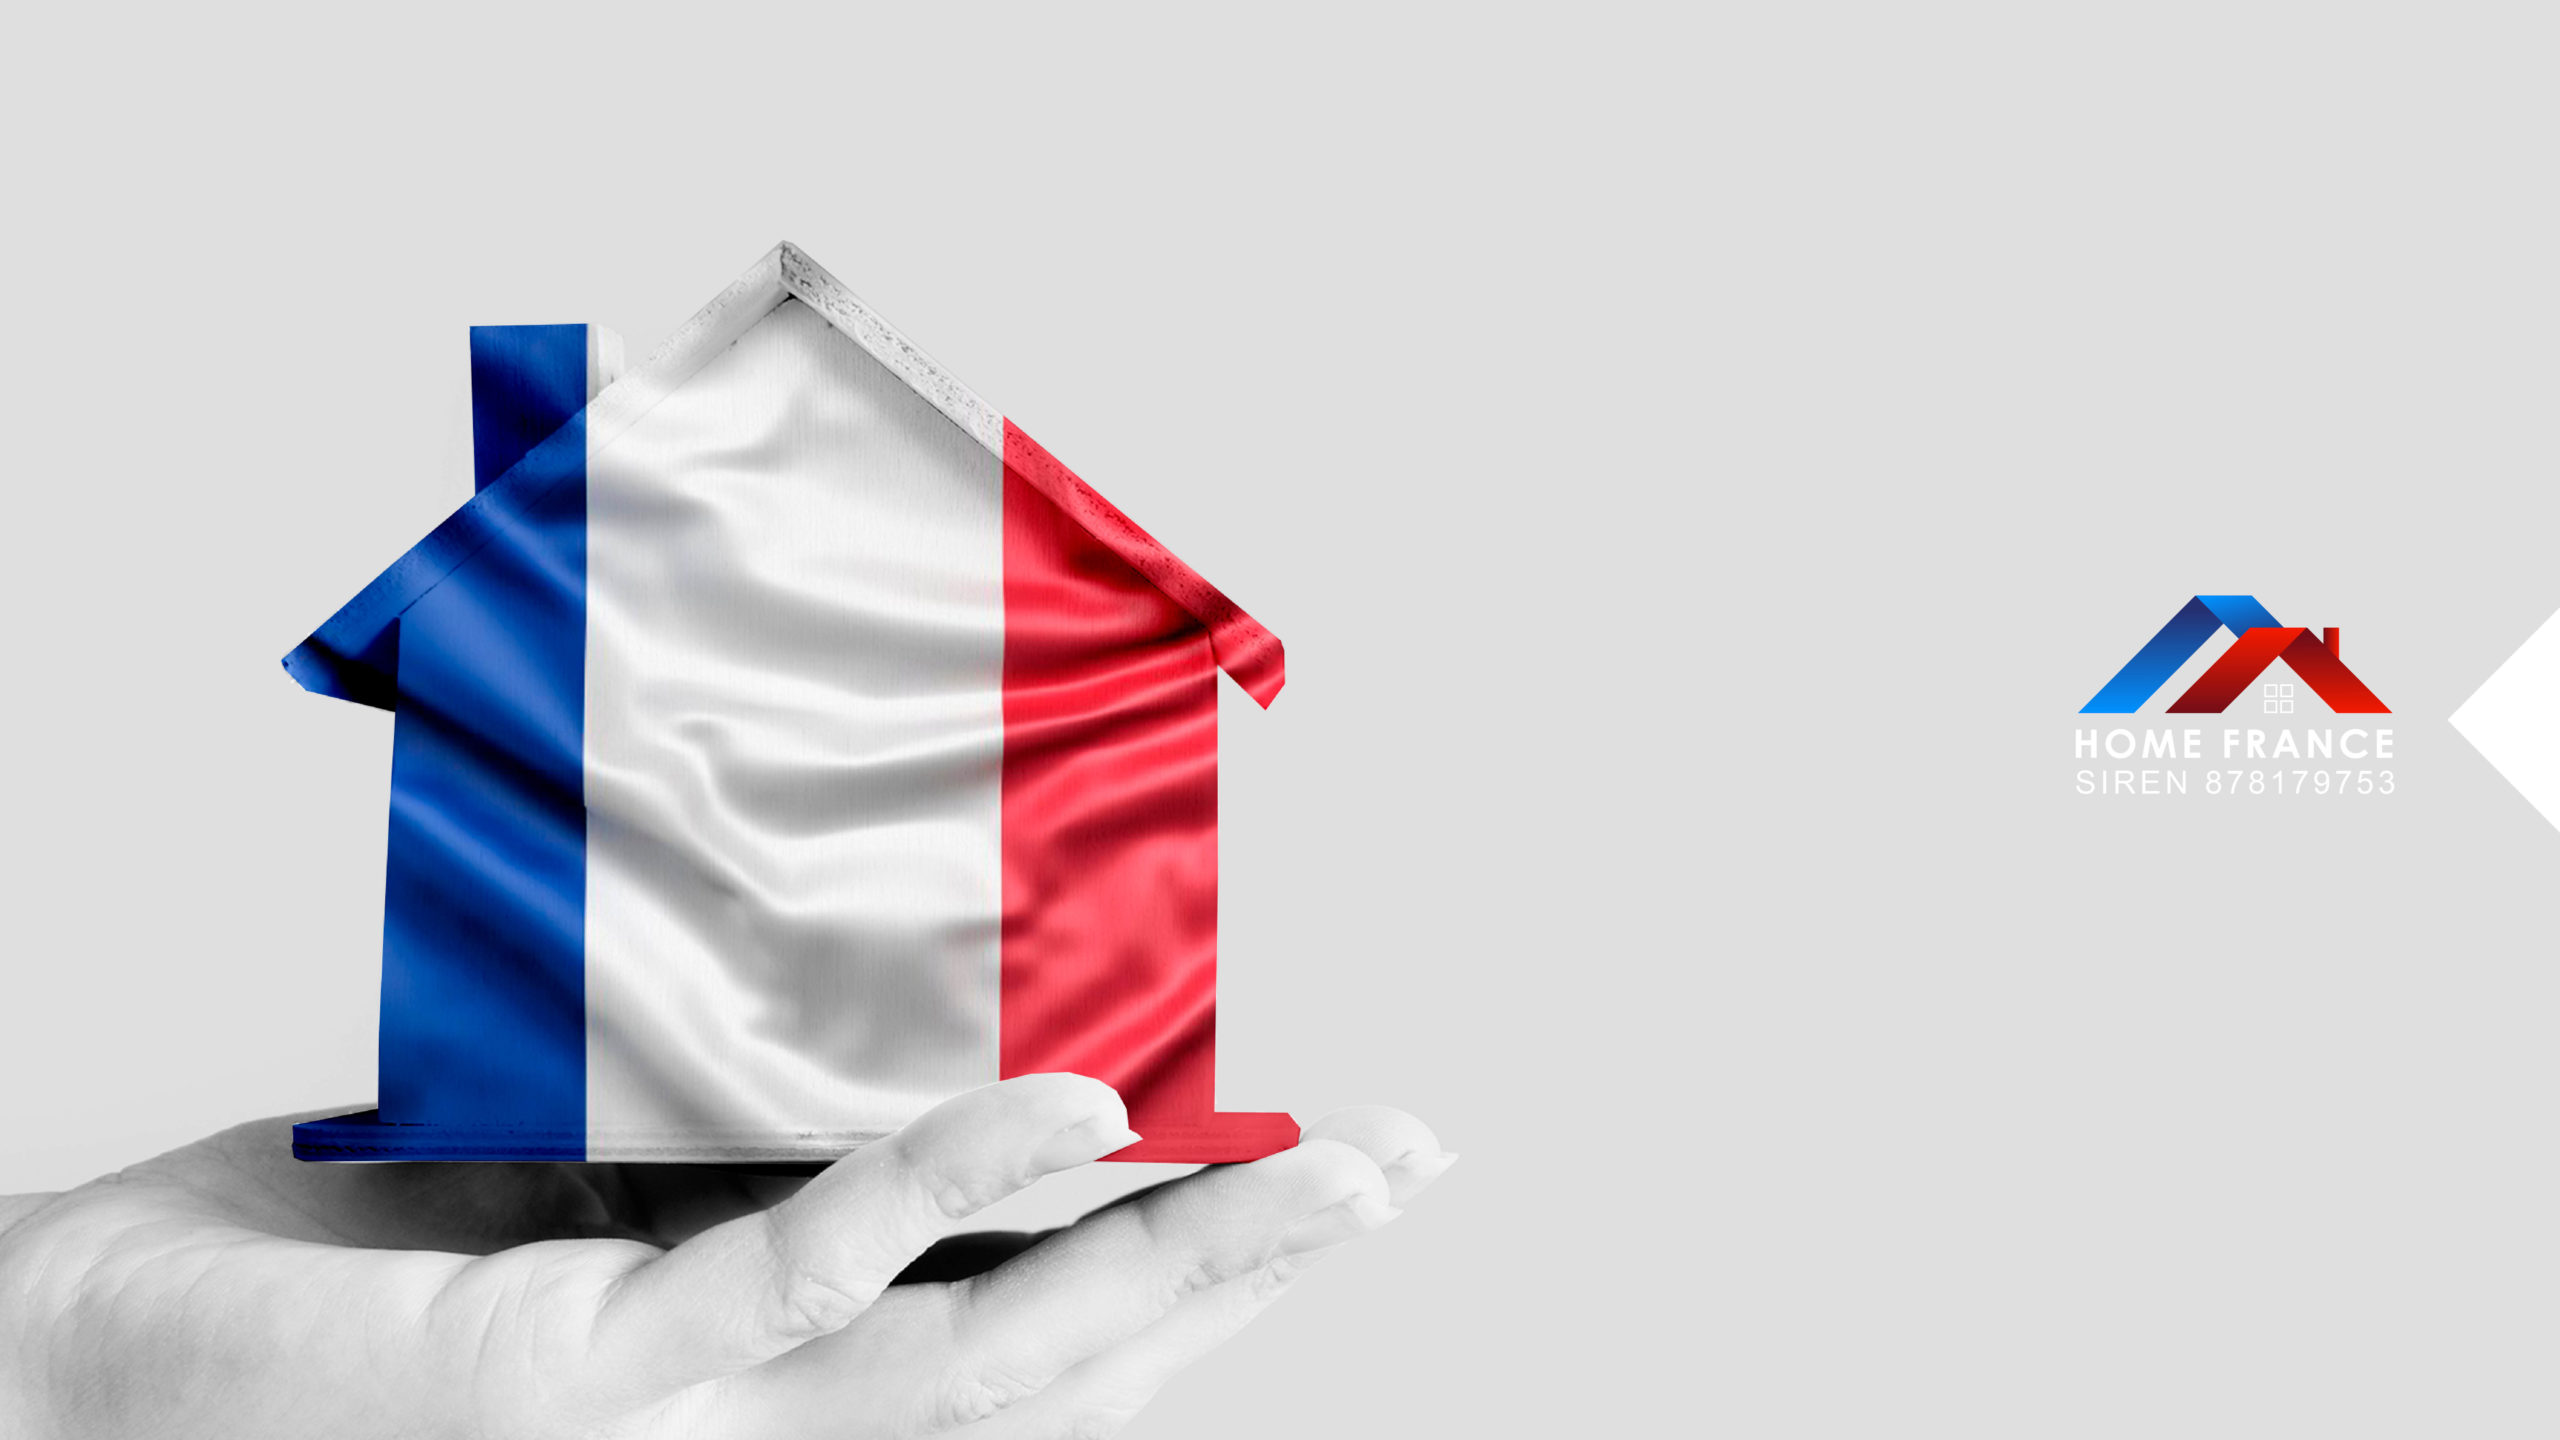 HOME FRANCE AGENCE IMMOBILIER (2)